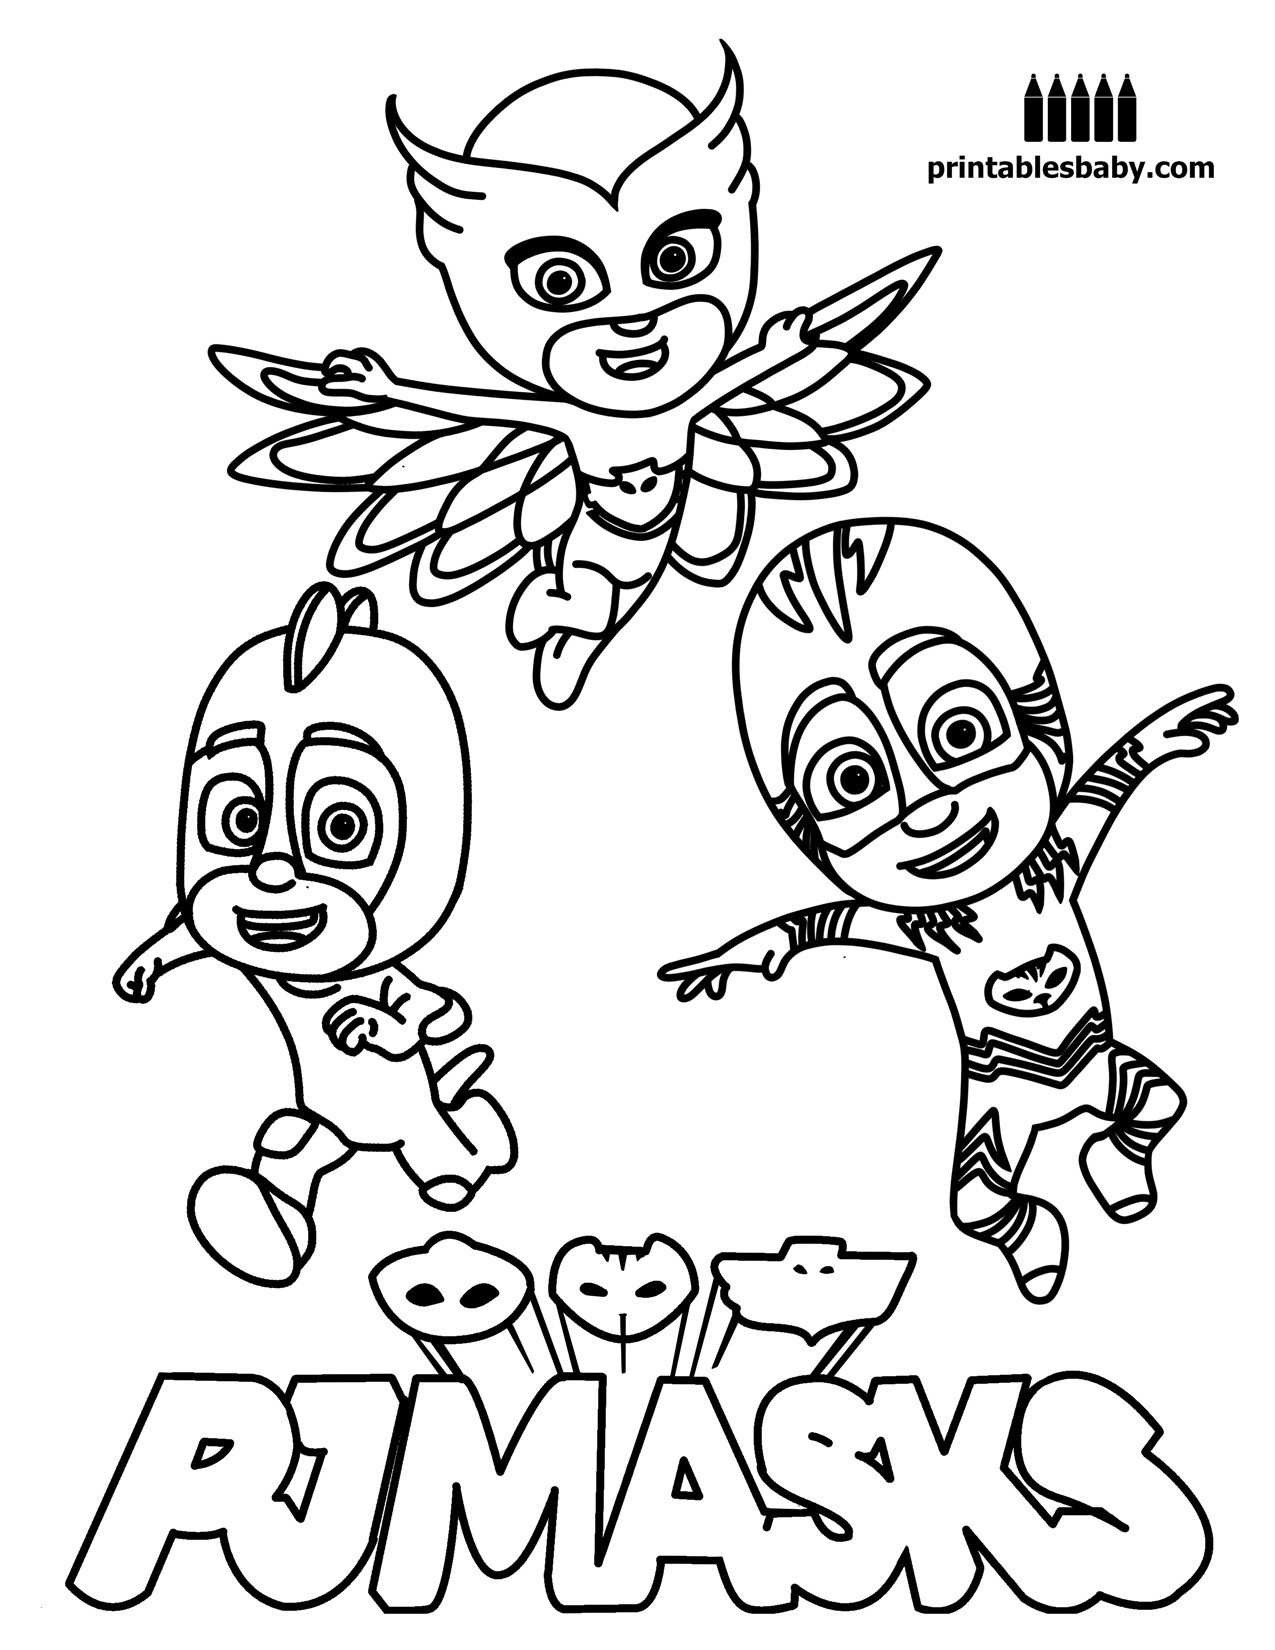 Pj Mask Ausmalbild Das Beste Von Pj Mask Coloring Pages Luxury Pj Mask Ausmalbilder Uploadertalk Bild